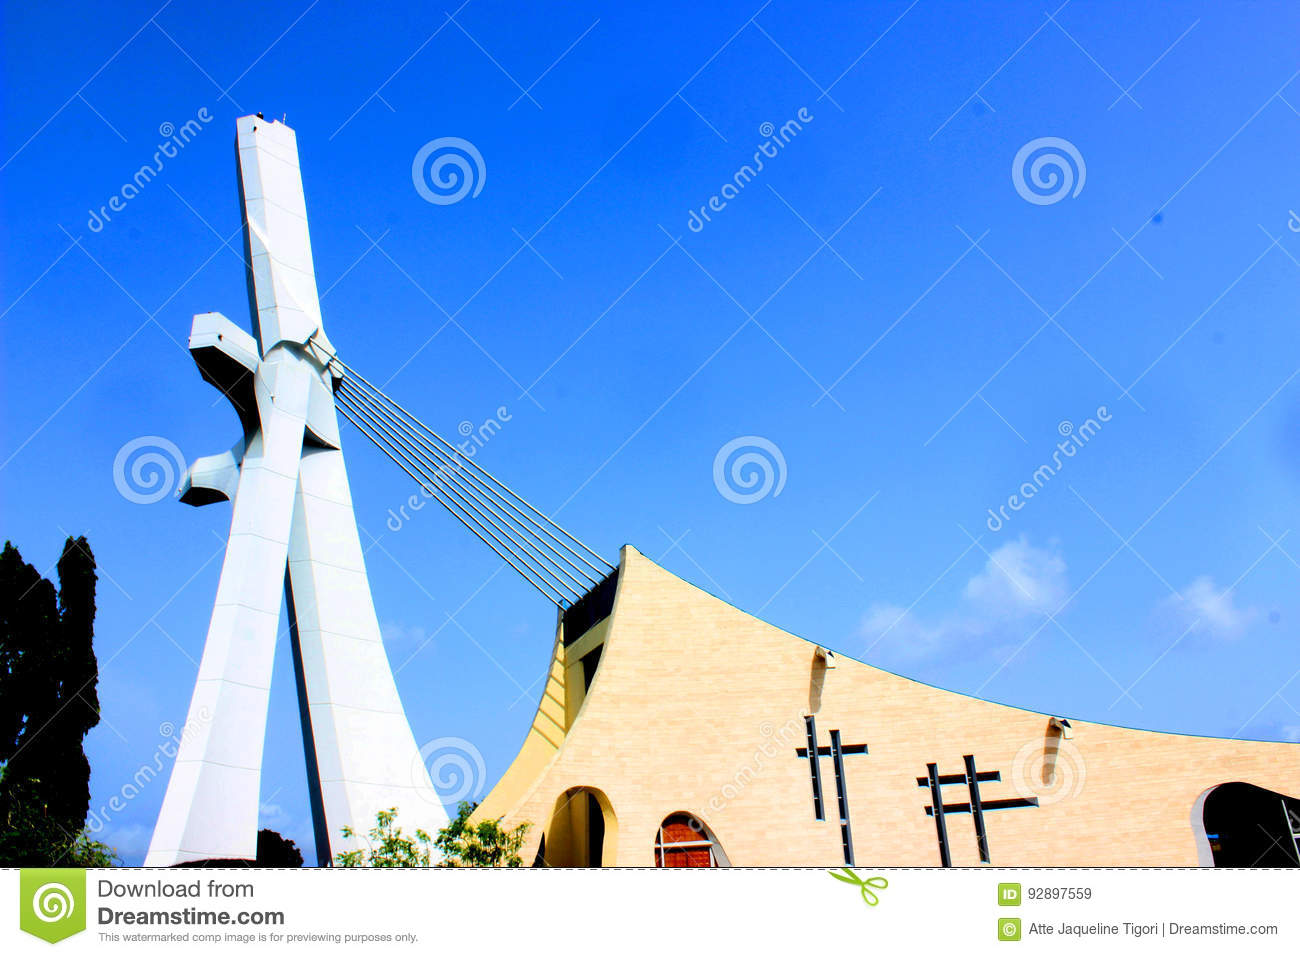 St paul of abidjan cathedral saint place editorial stock image editorial stock photo buycottarizona Gallery